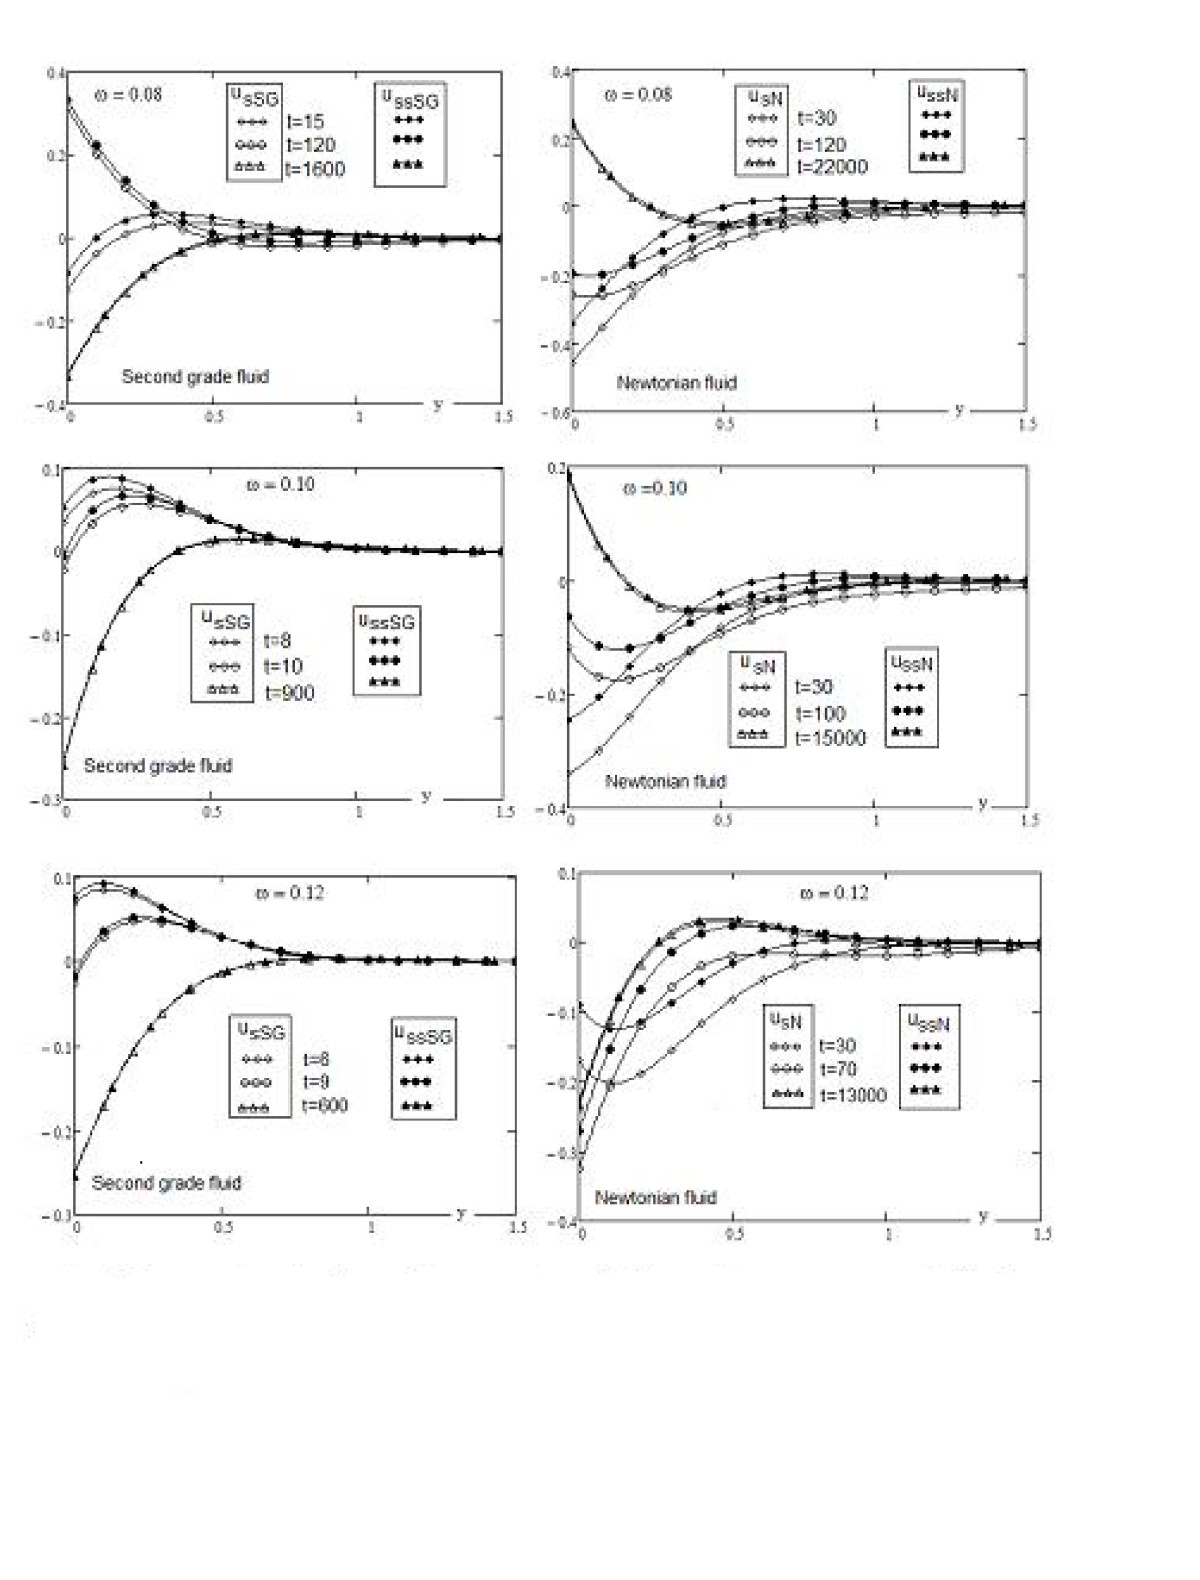 http://static-content.springer.com/image/art%3A10.1186%2F1687-2770-2012-48/MediaObjects/13661_2011_Article_139_Fig7_HTML.jpg